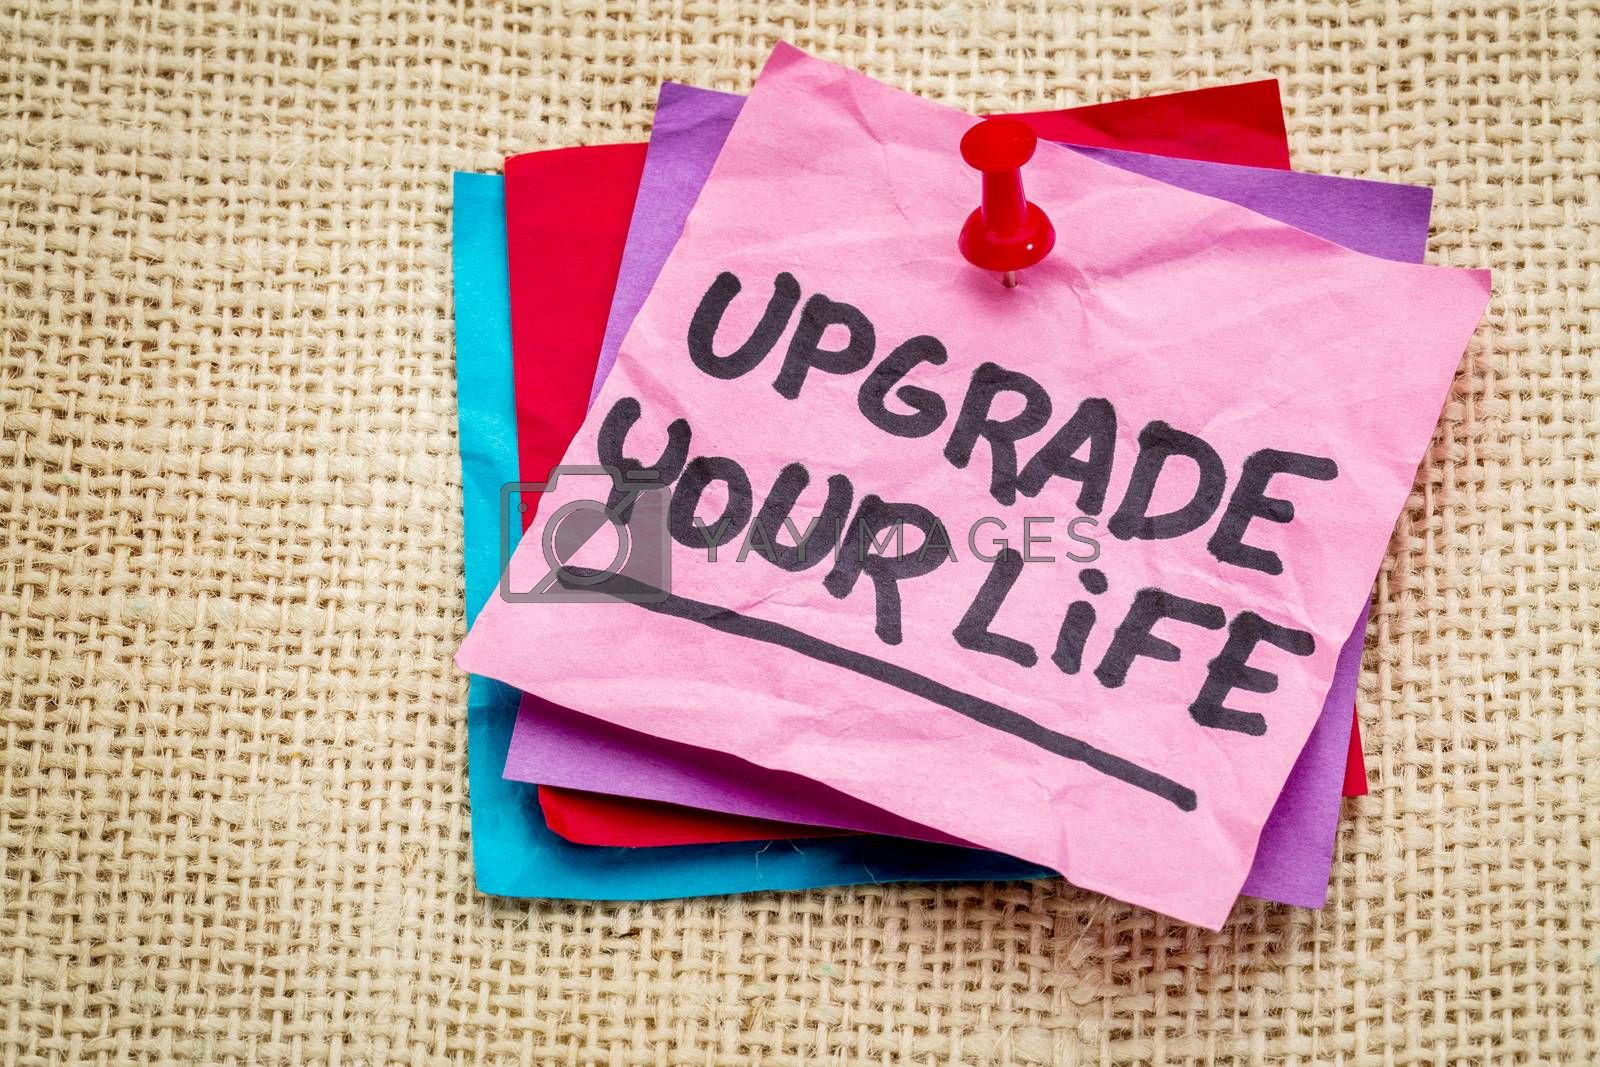 upgrade your life advice - motivational text on a sticky note